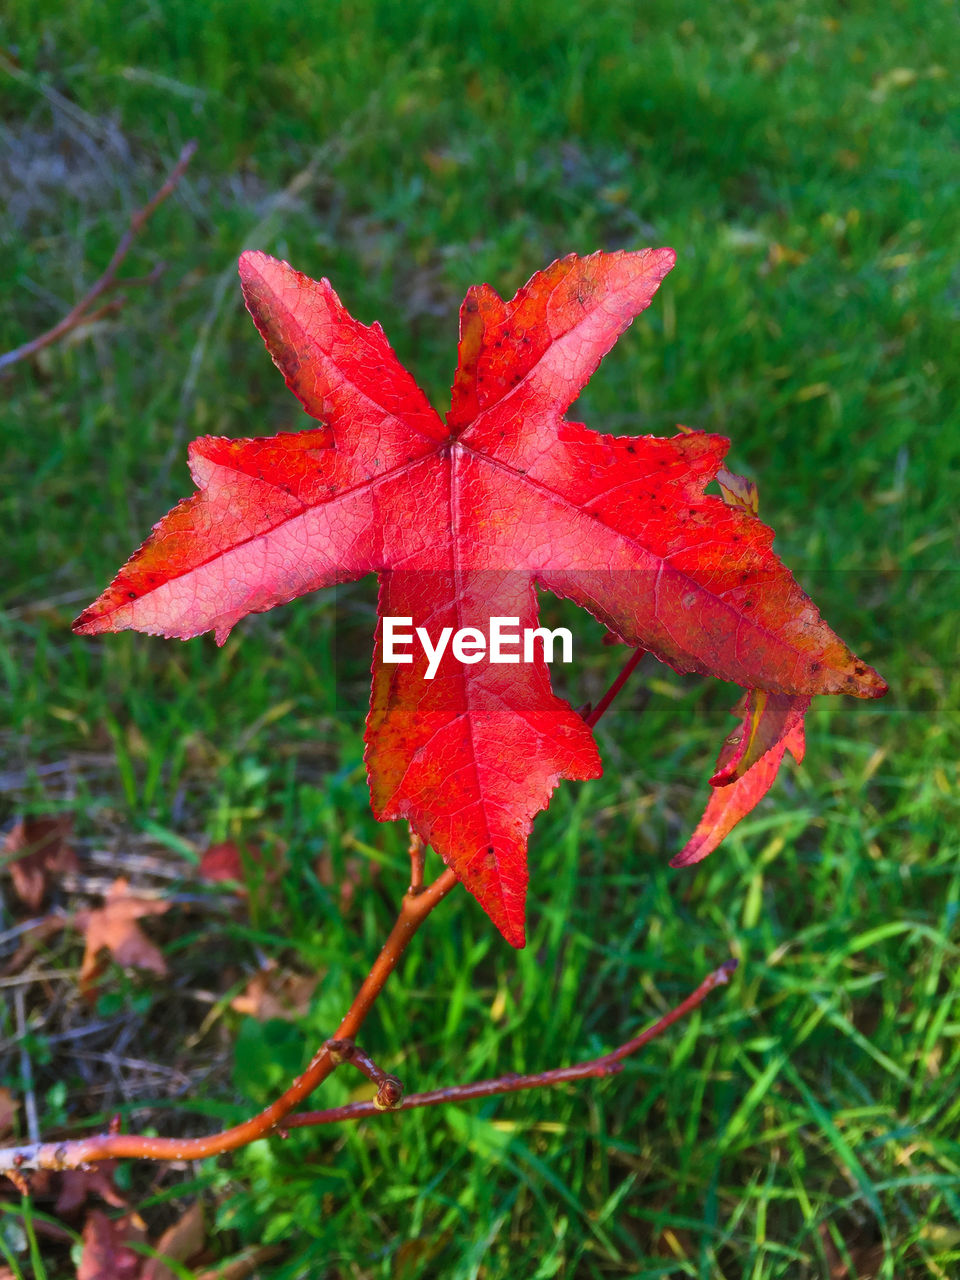 leaf, autumn, change, red, maple leaf, nature, day, maple, focus on foreground, outdoors, close-up, fragility, no people, grass, growth, beauty in nature, water